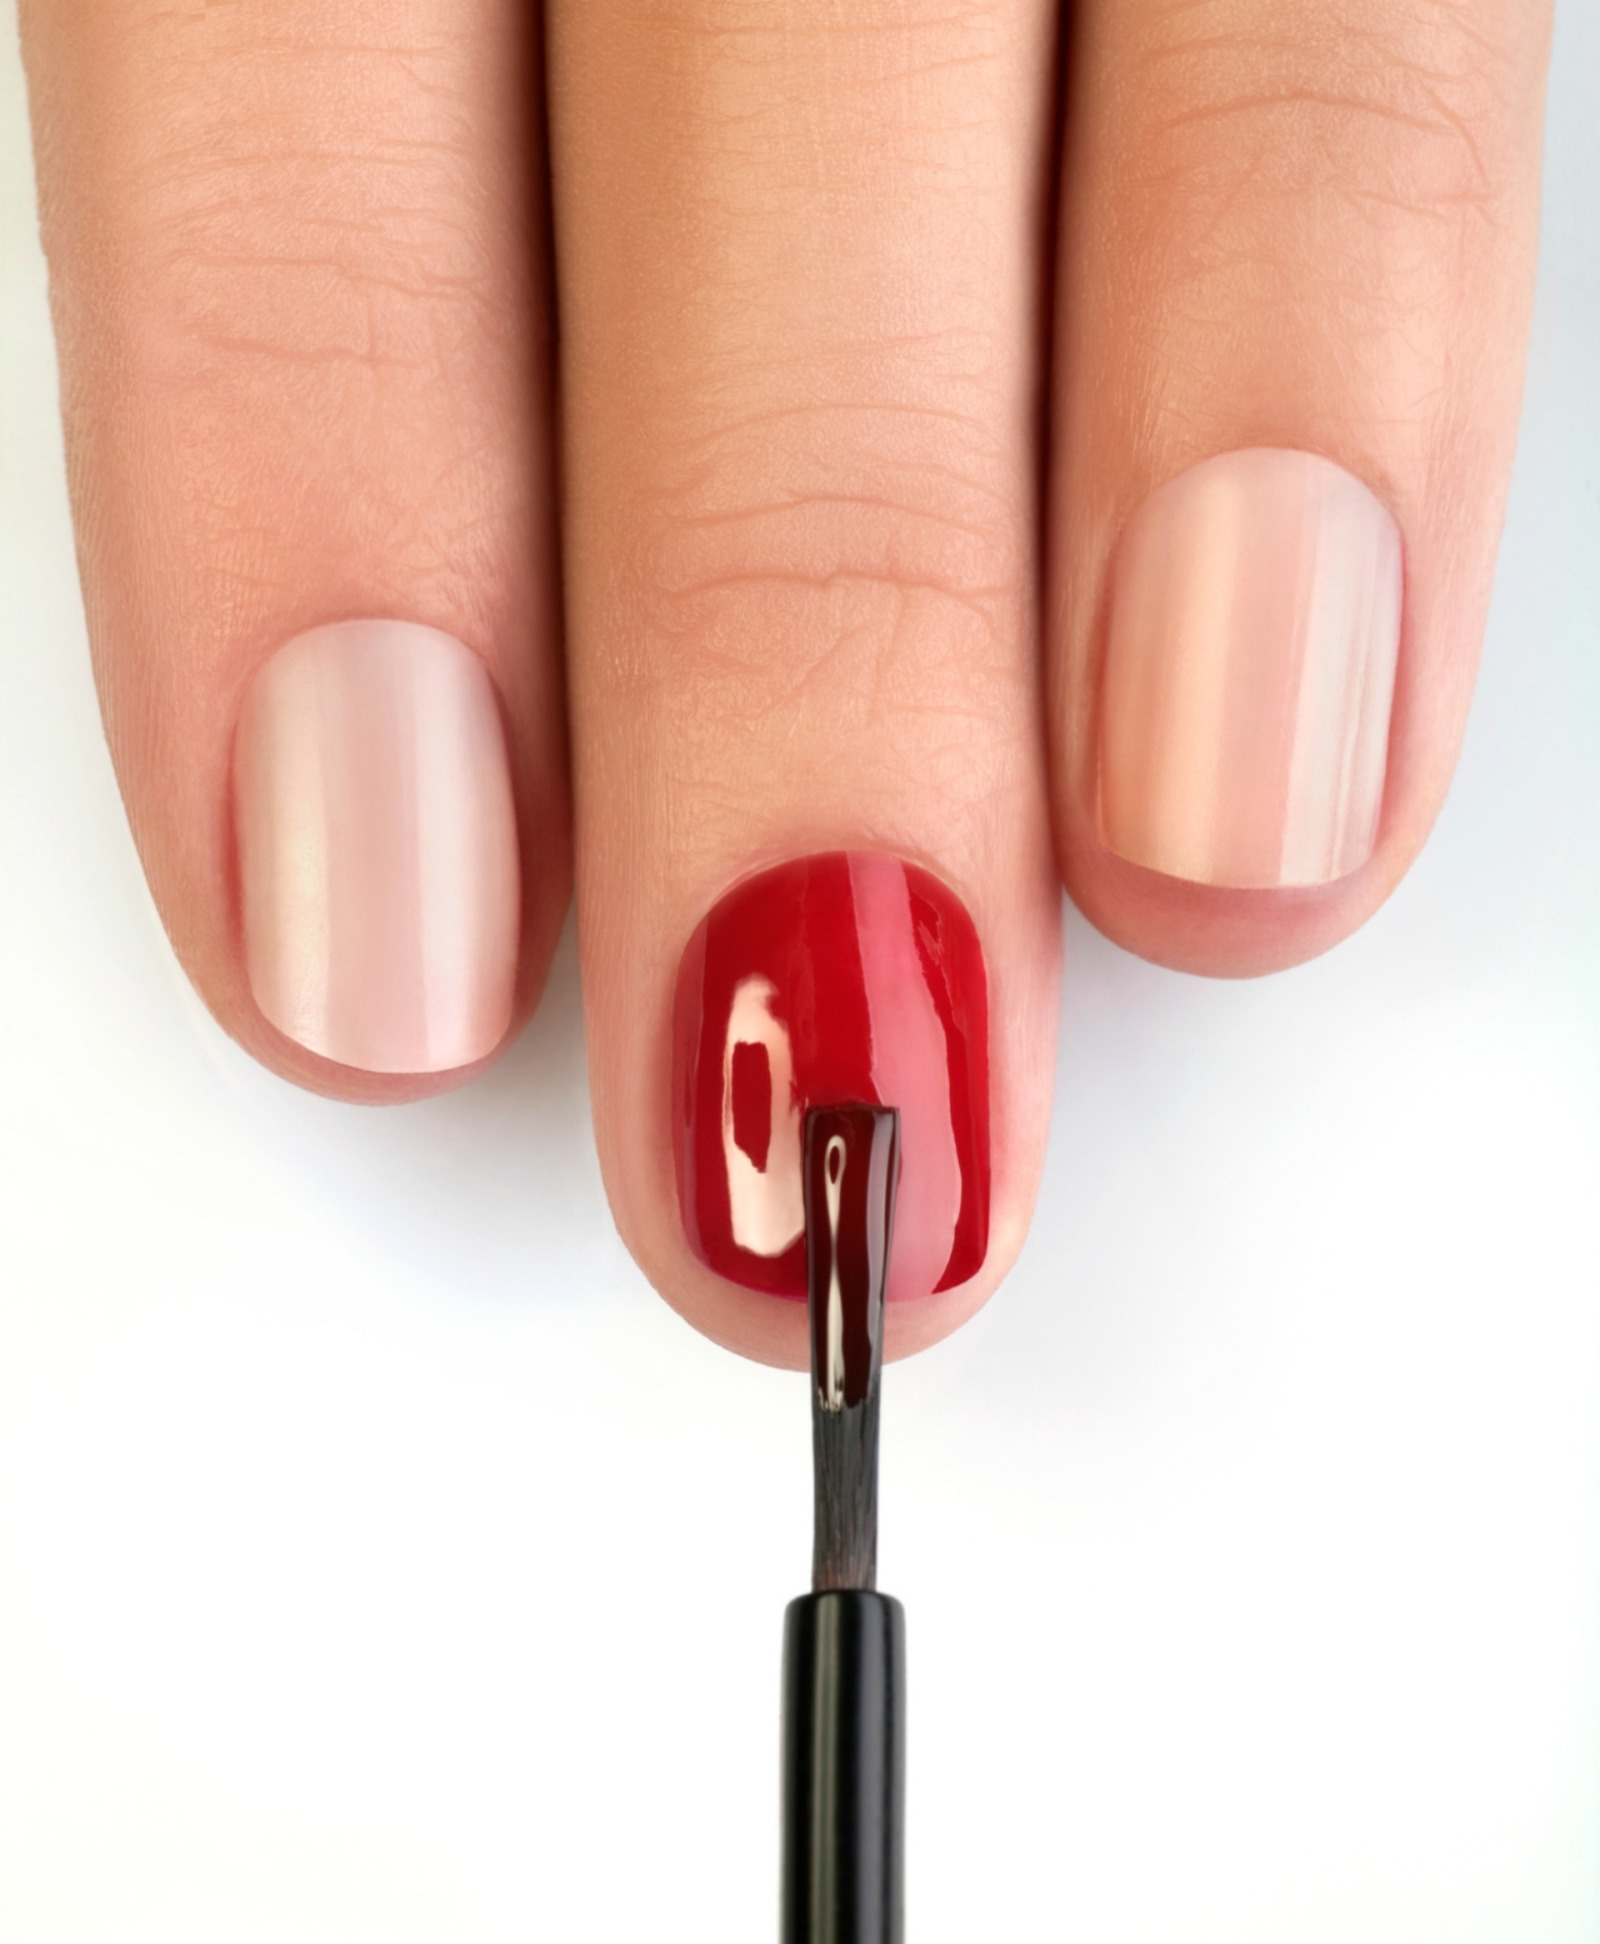 Professional Painting Tips: How To Give Yourself A Professional Manicure